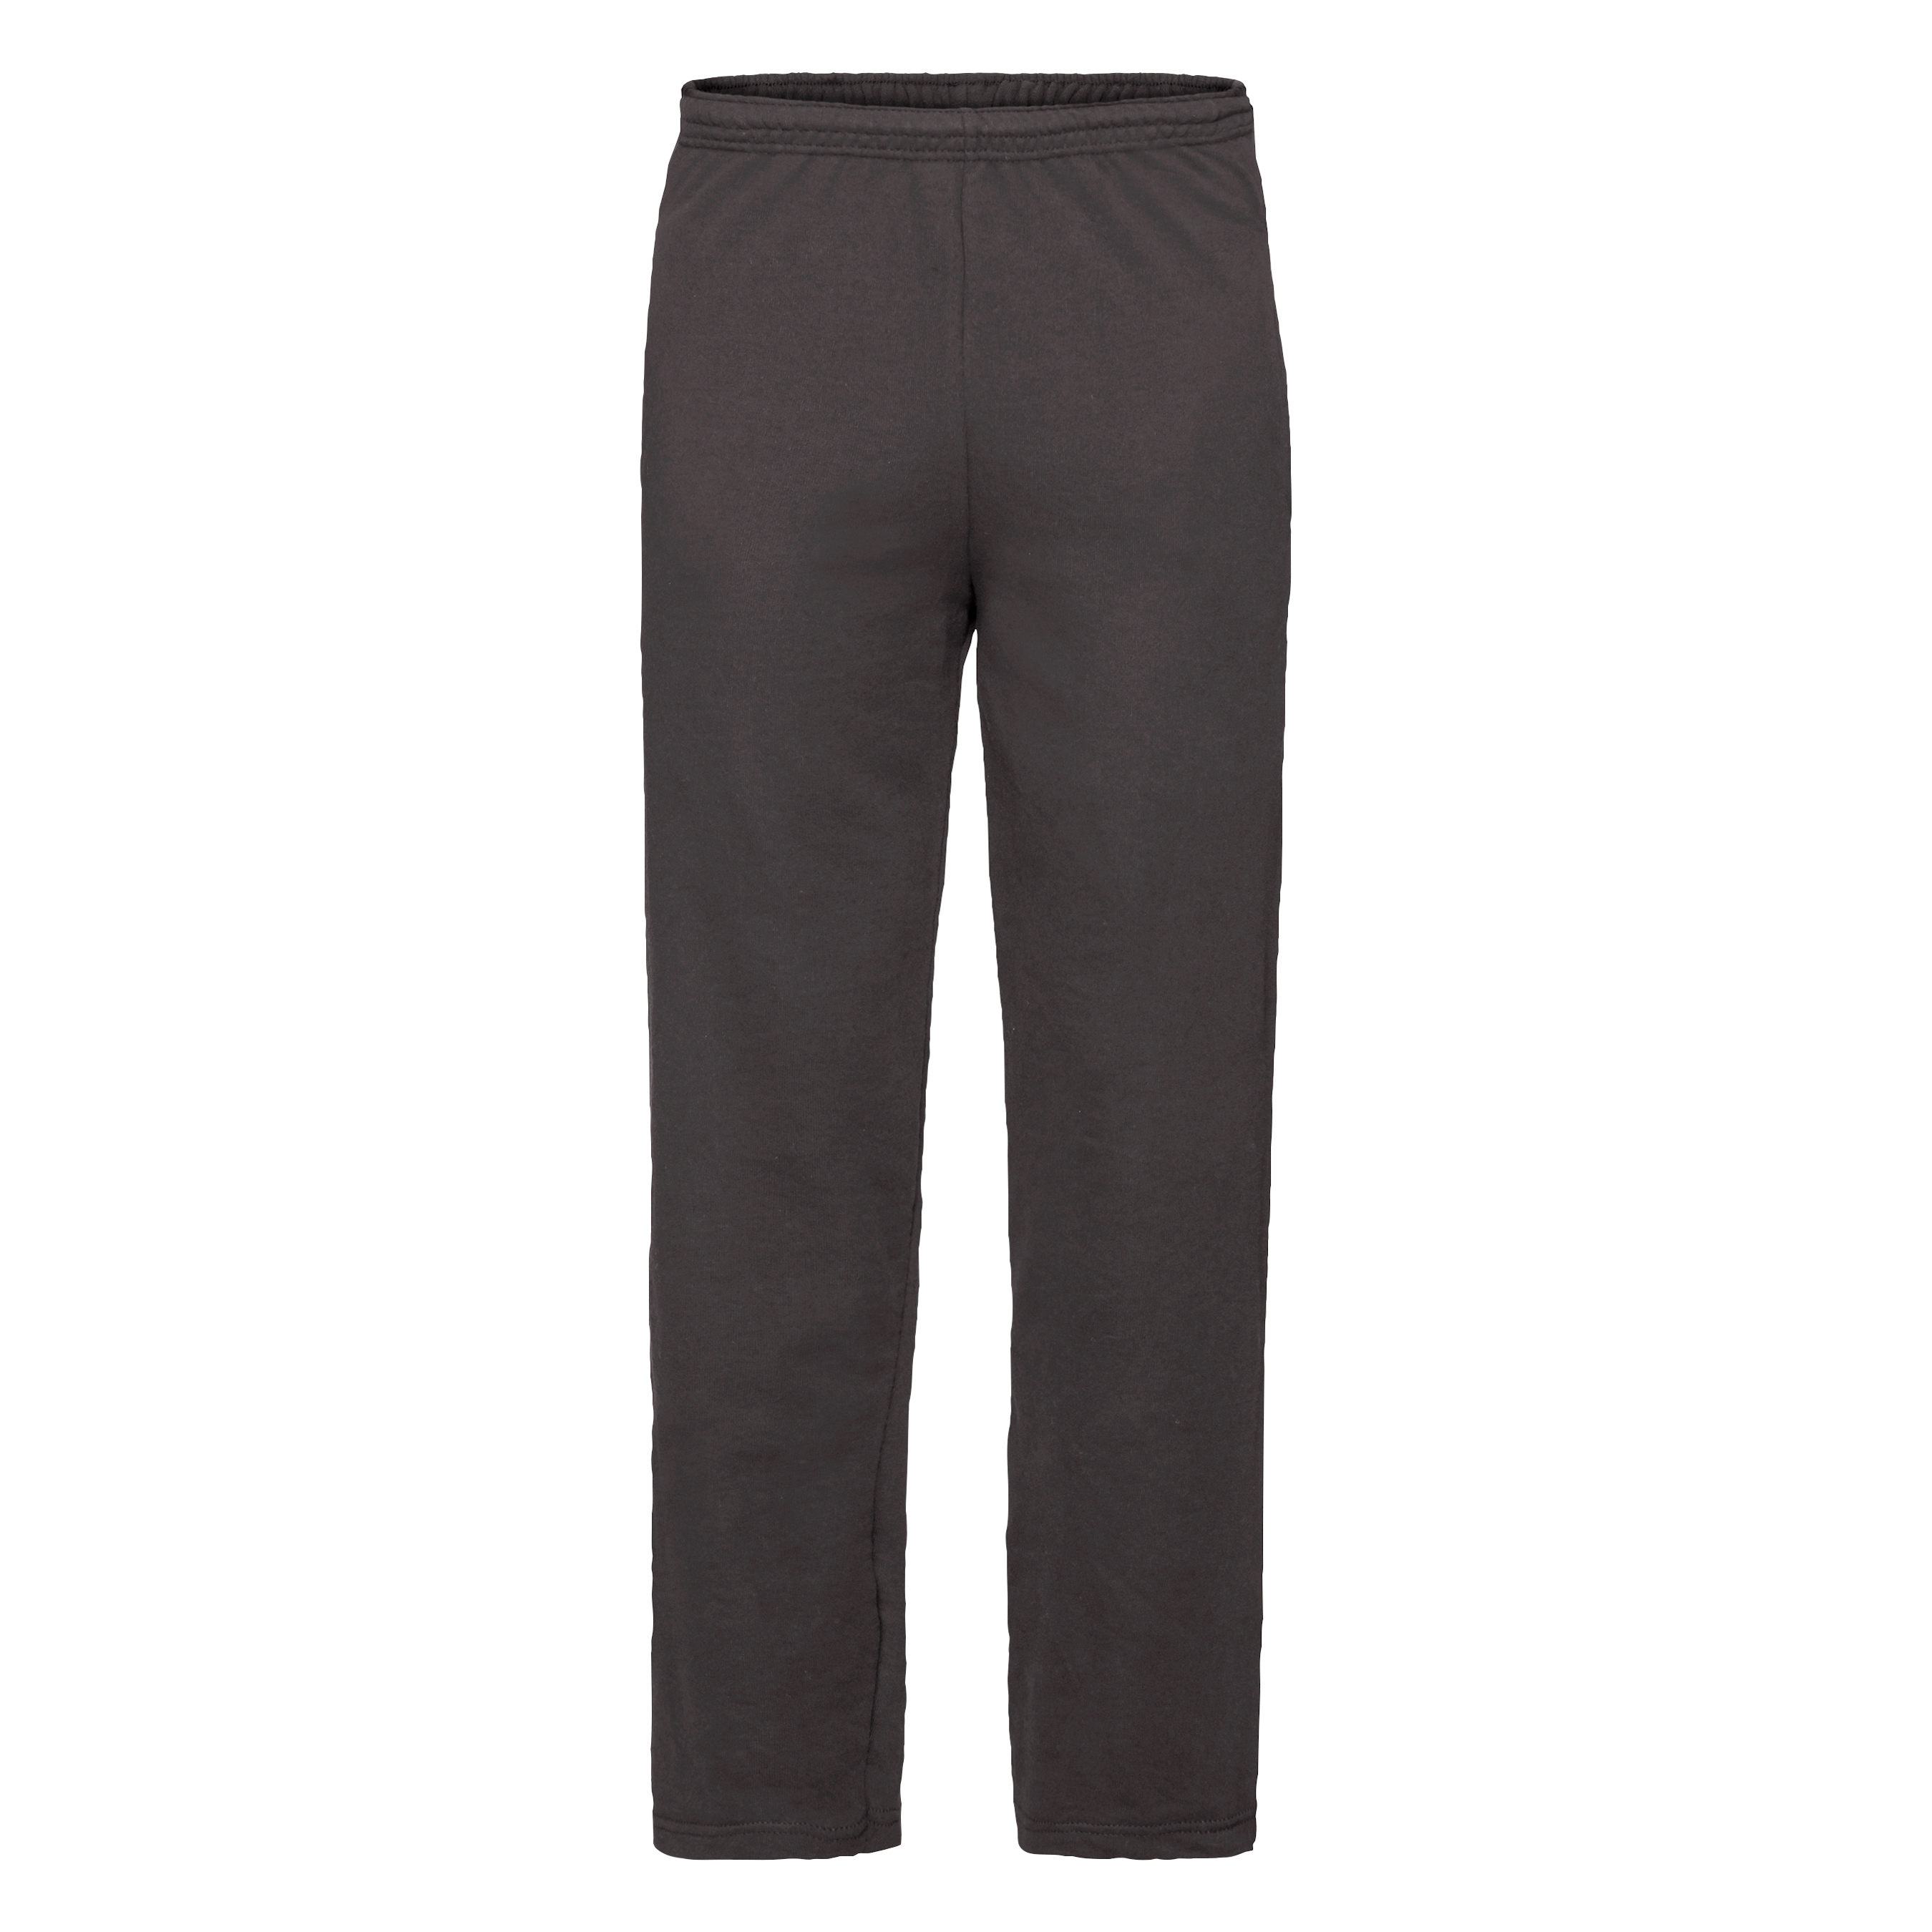 Spodnie dresowe Lightweight Open Leg Jog Pants | Fruit of the Loom